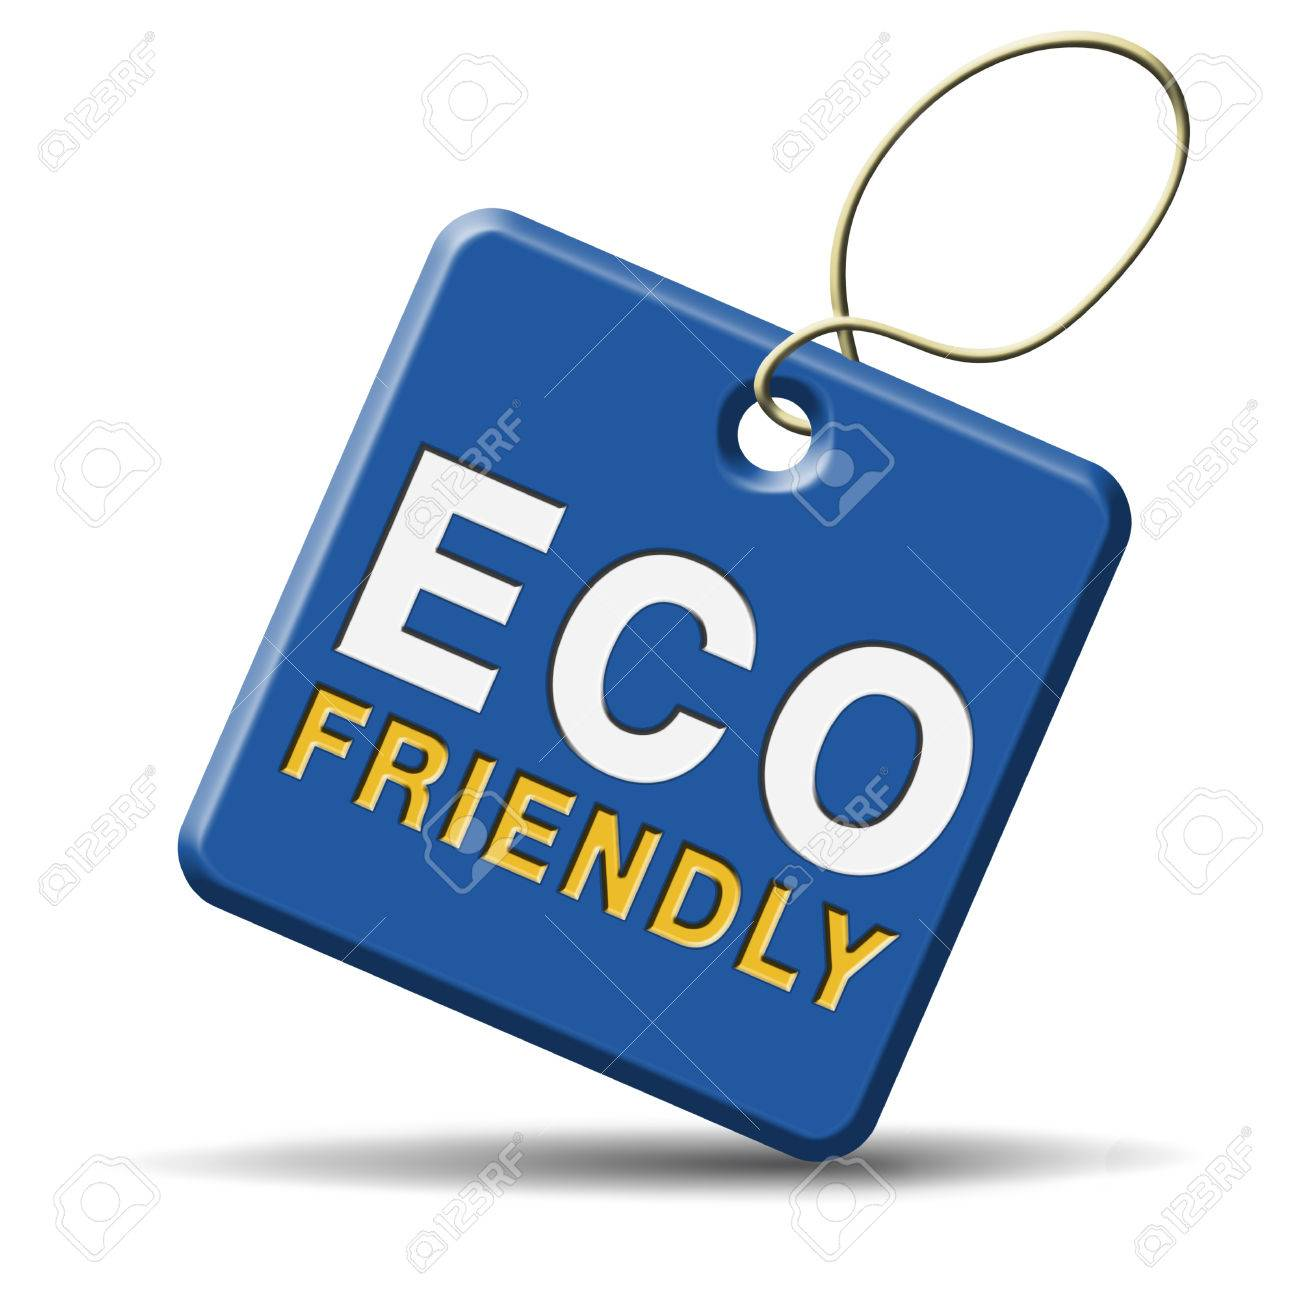 eco friendly bio product with biological and ecological label guaranteed 100% natural and organic. Stock Photo - 23236929